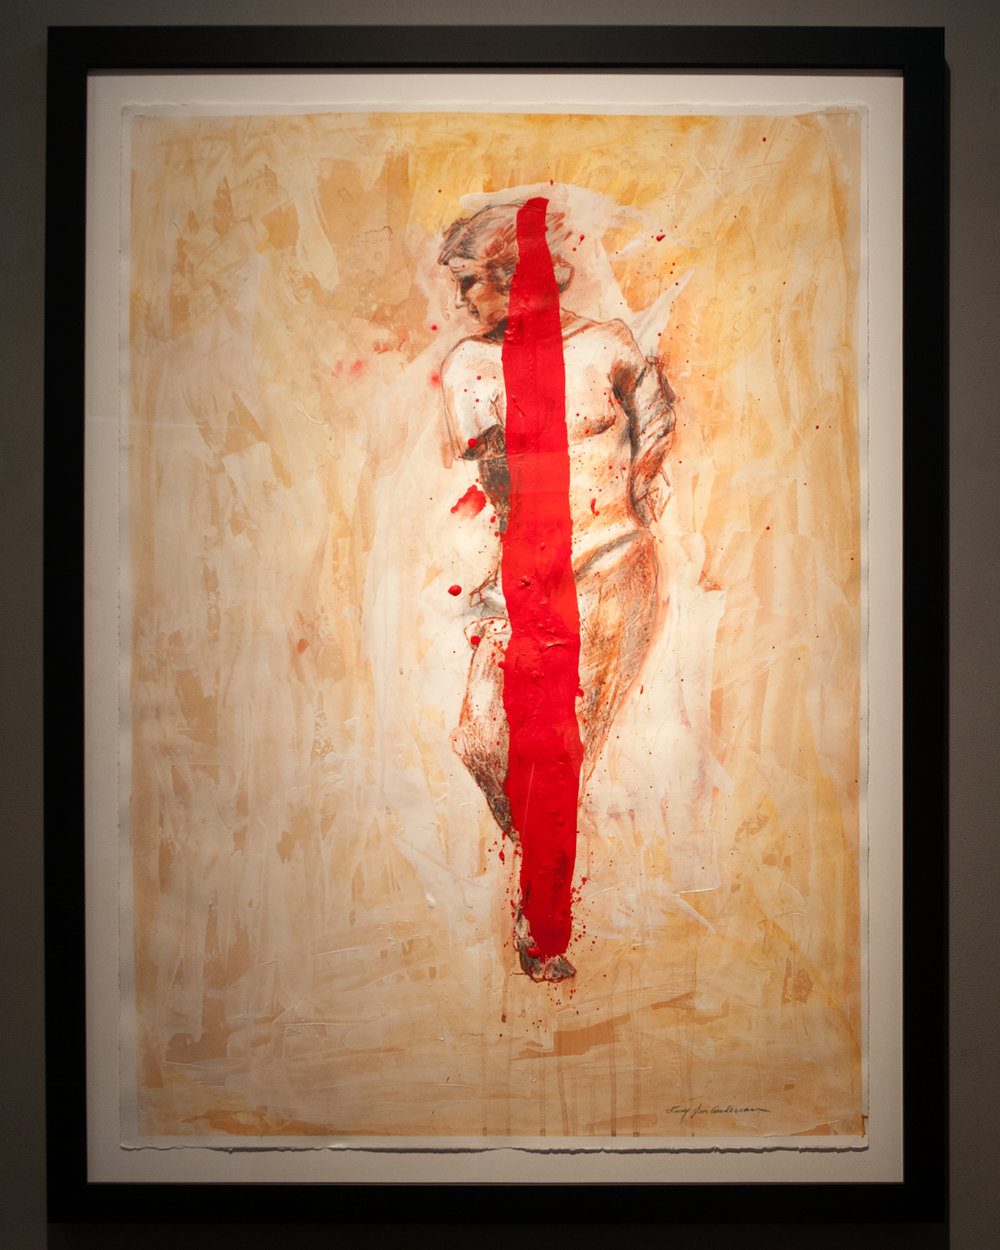 Wounded Desire acrylic, gesso, graphite, sanguine Conté on paper 47.5 x 35.5 inches LJA 178G